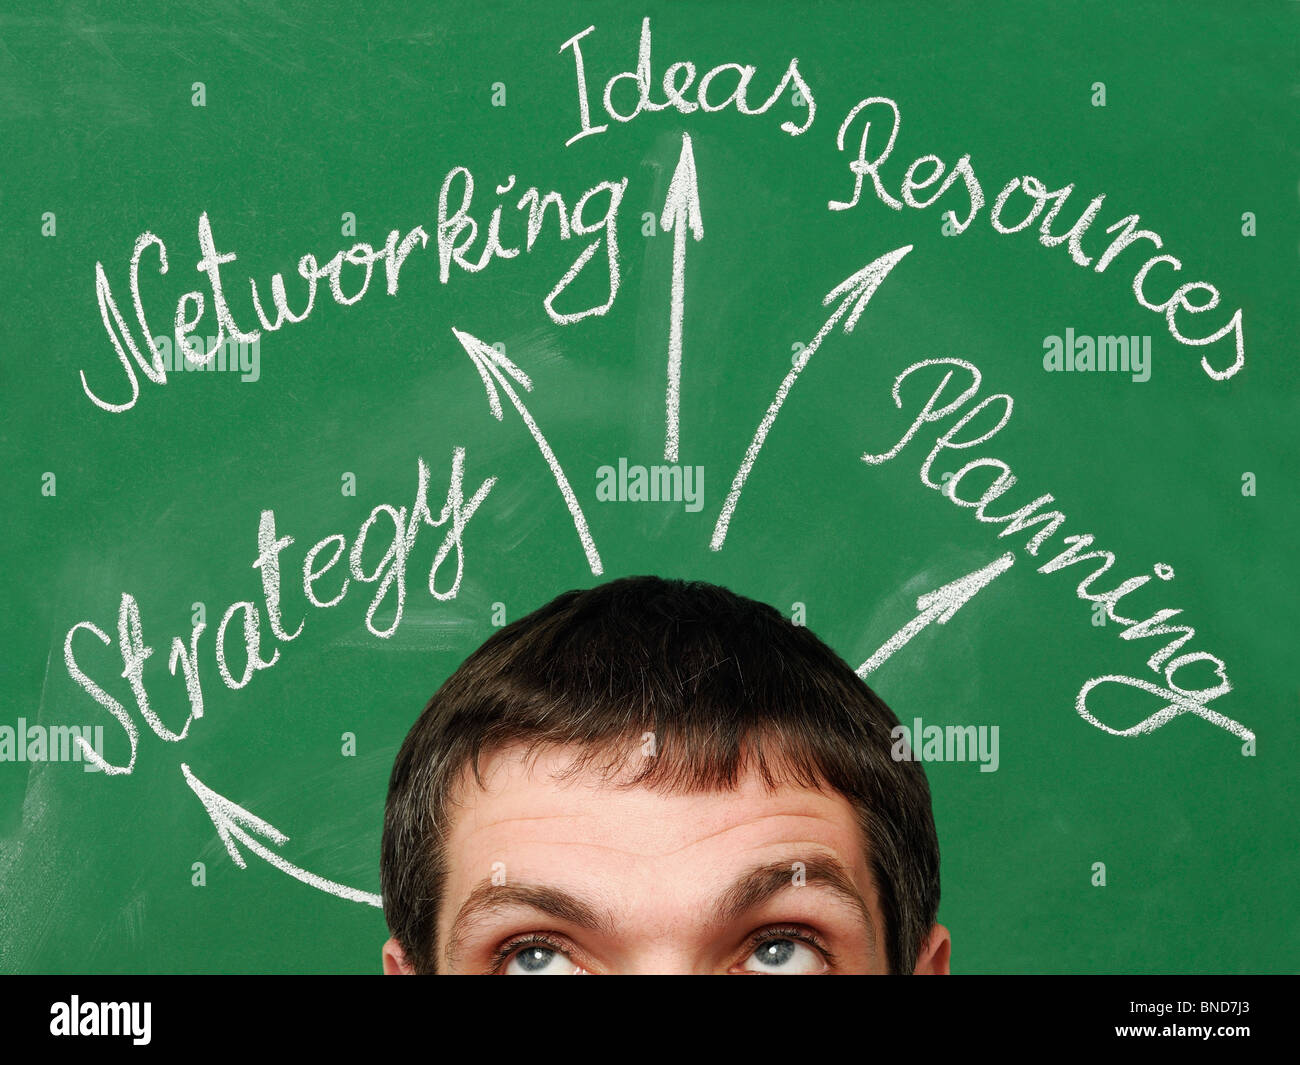 Business Planning. Businessman in Front of a Chalkboard with a Business Planning Diagram. - Stock Image